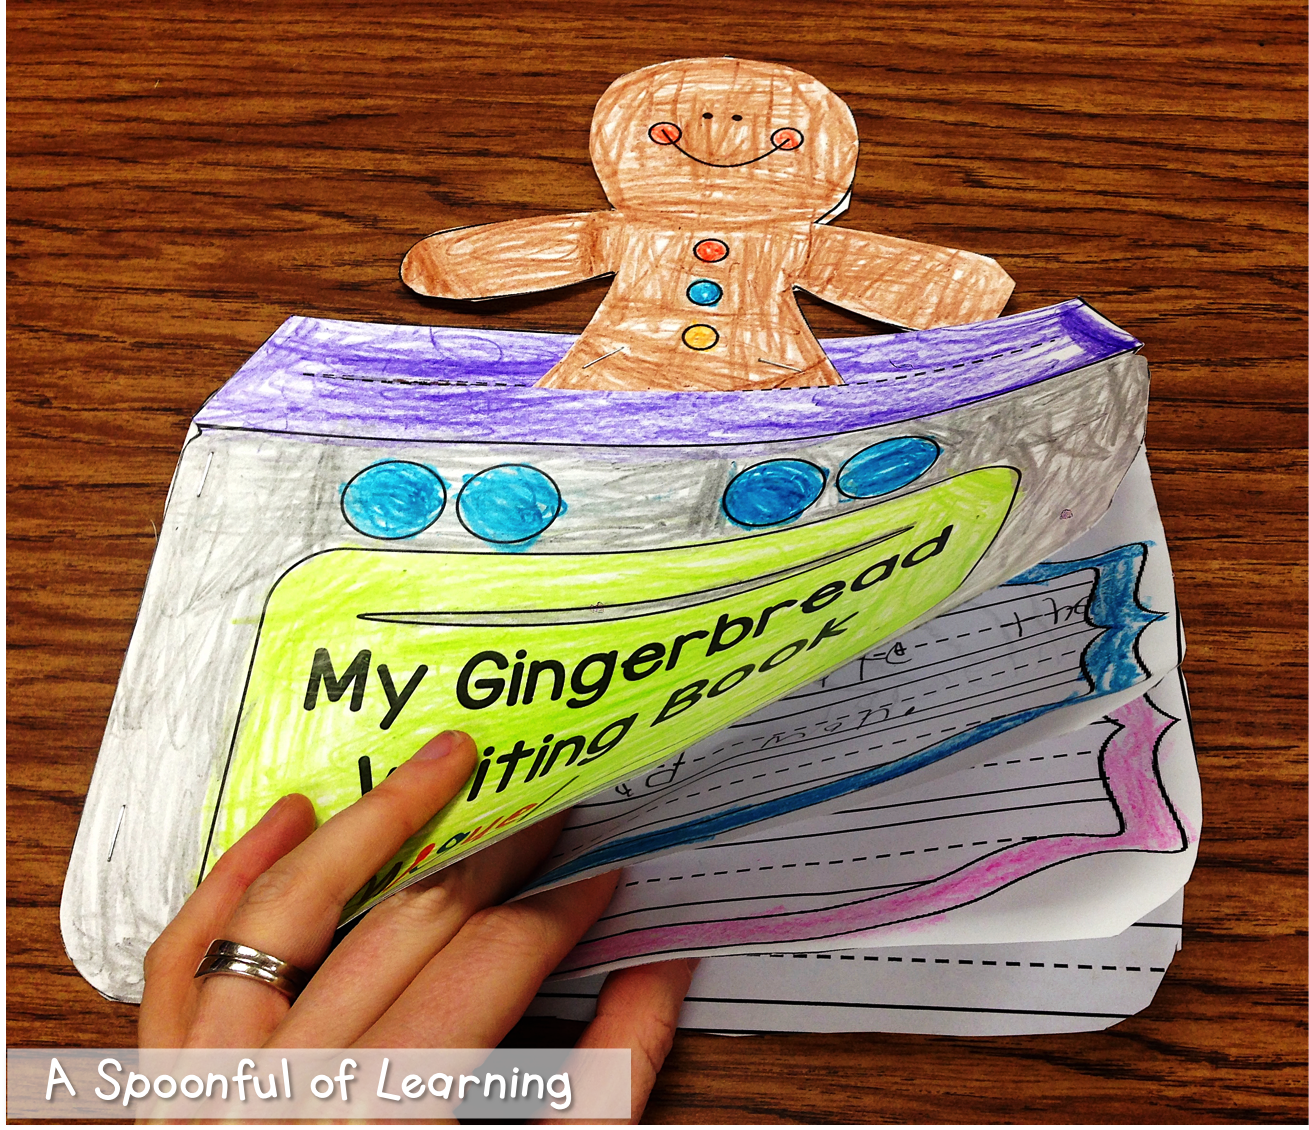 Gingerbread Man! - A Spoonful of Learning